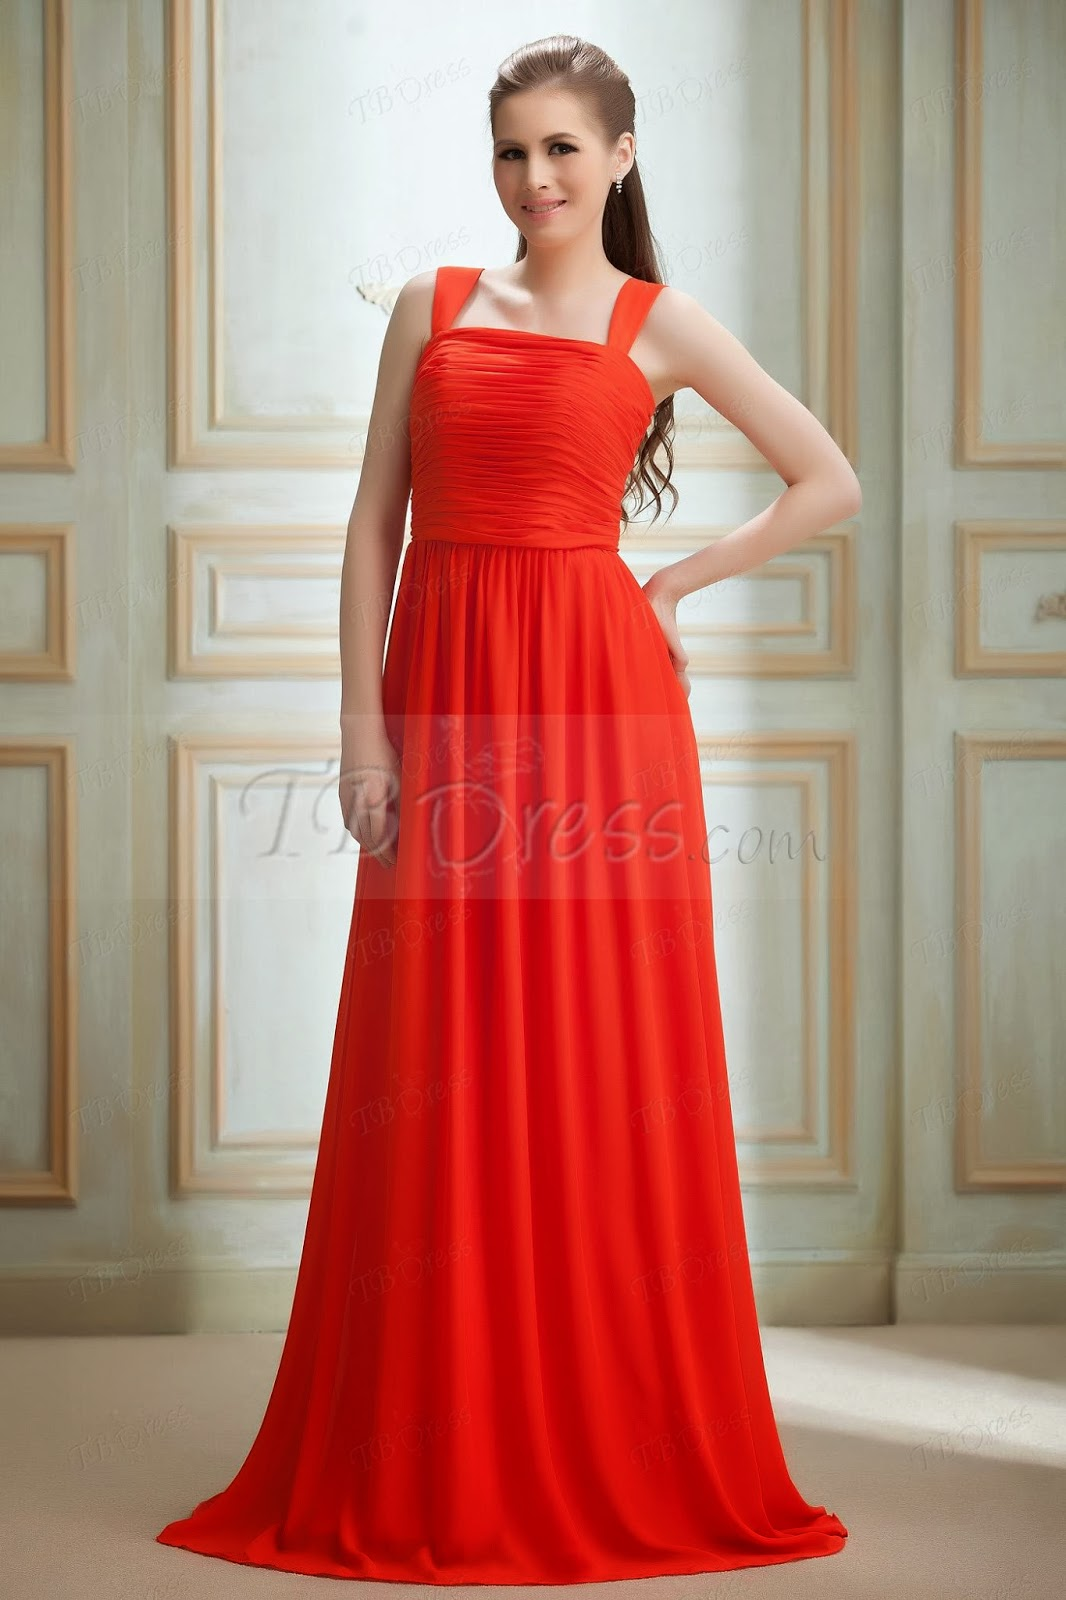 Valentineu0027s Day Dress Ideas   Best Valentine Dresses 2014!